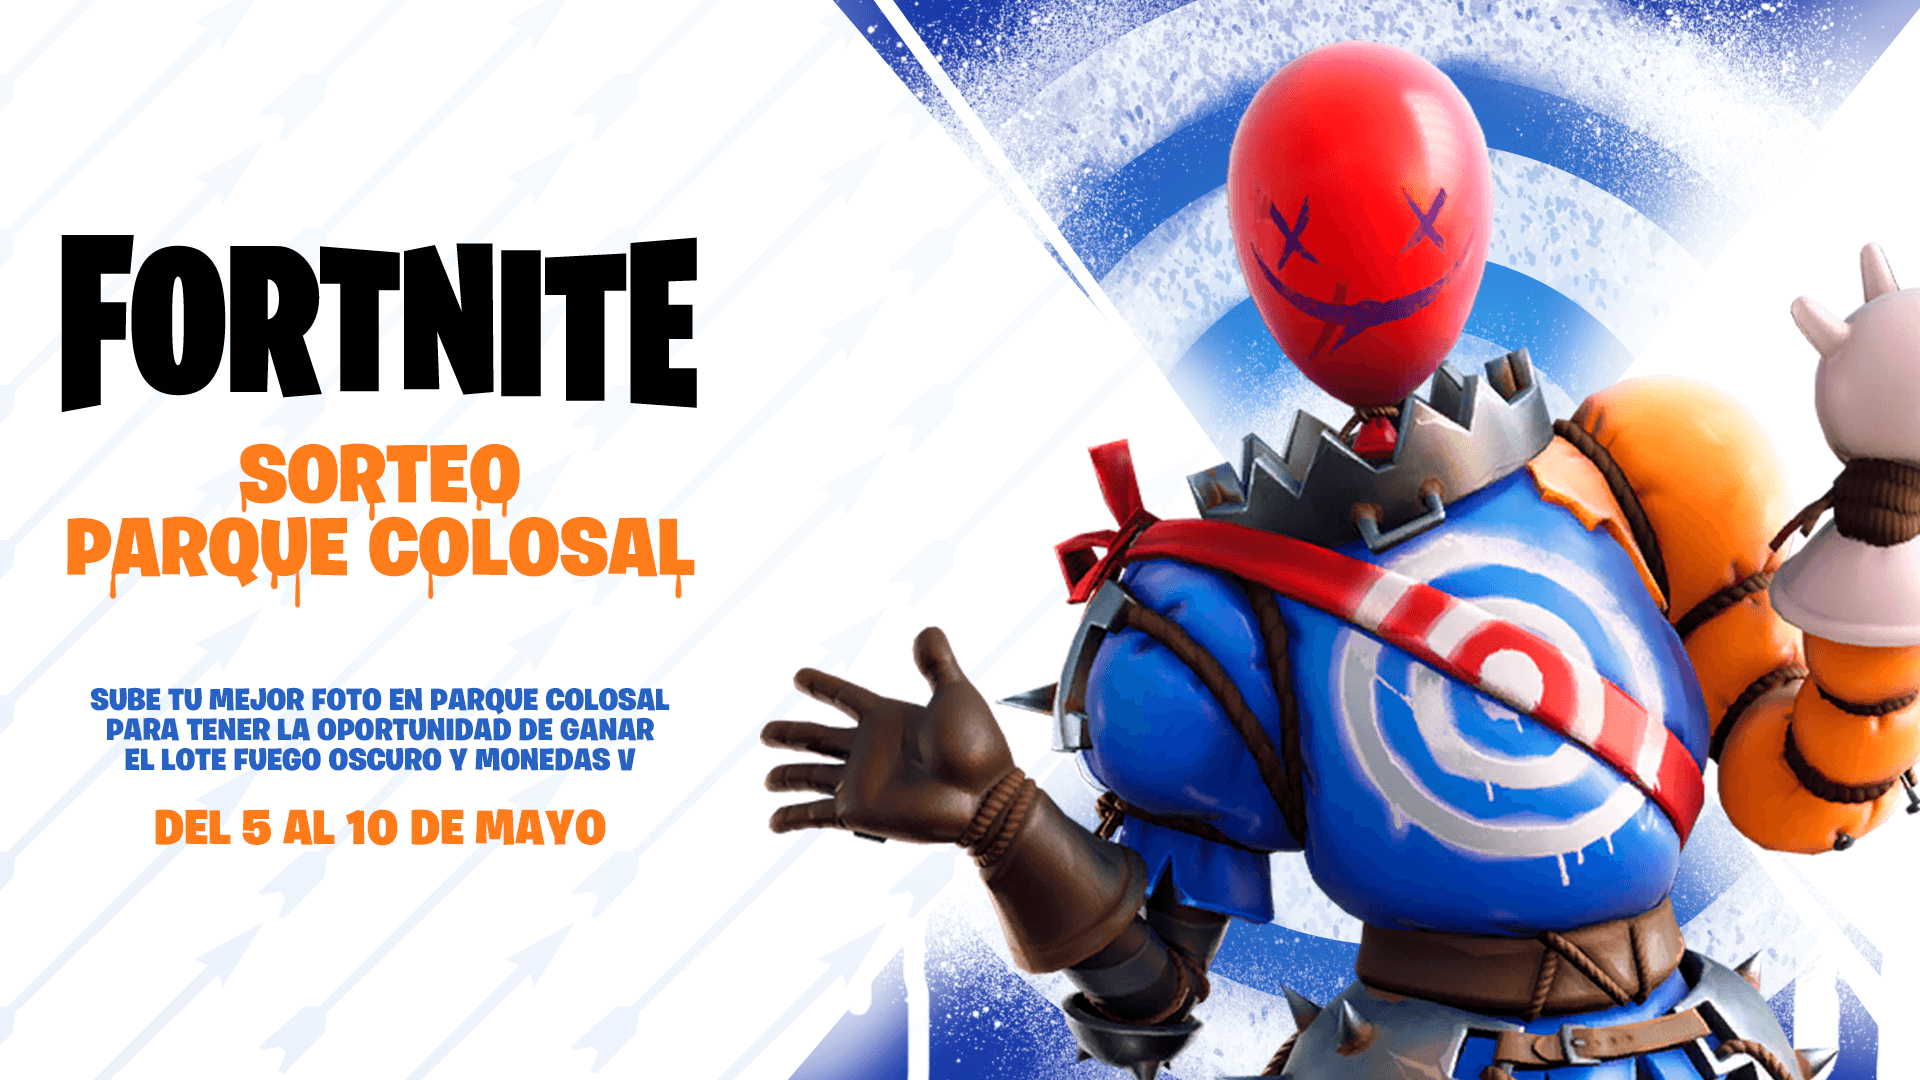 Fortnite Parque Colosal Sweepstakes